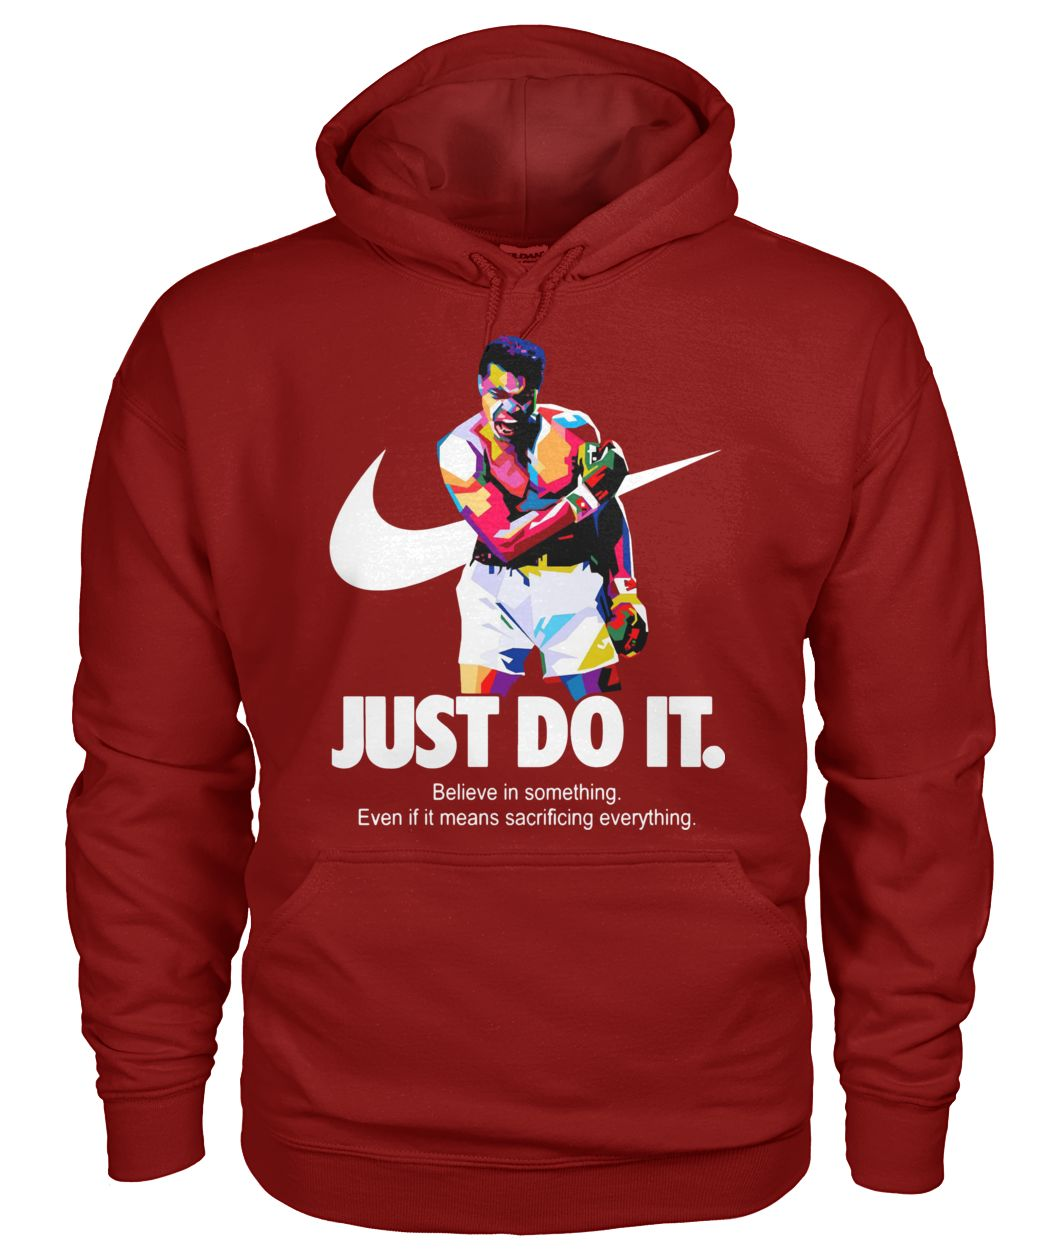 Muhammad Ali just do it believe in something even if it means sacrificing everything gildan hoodie